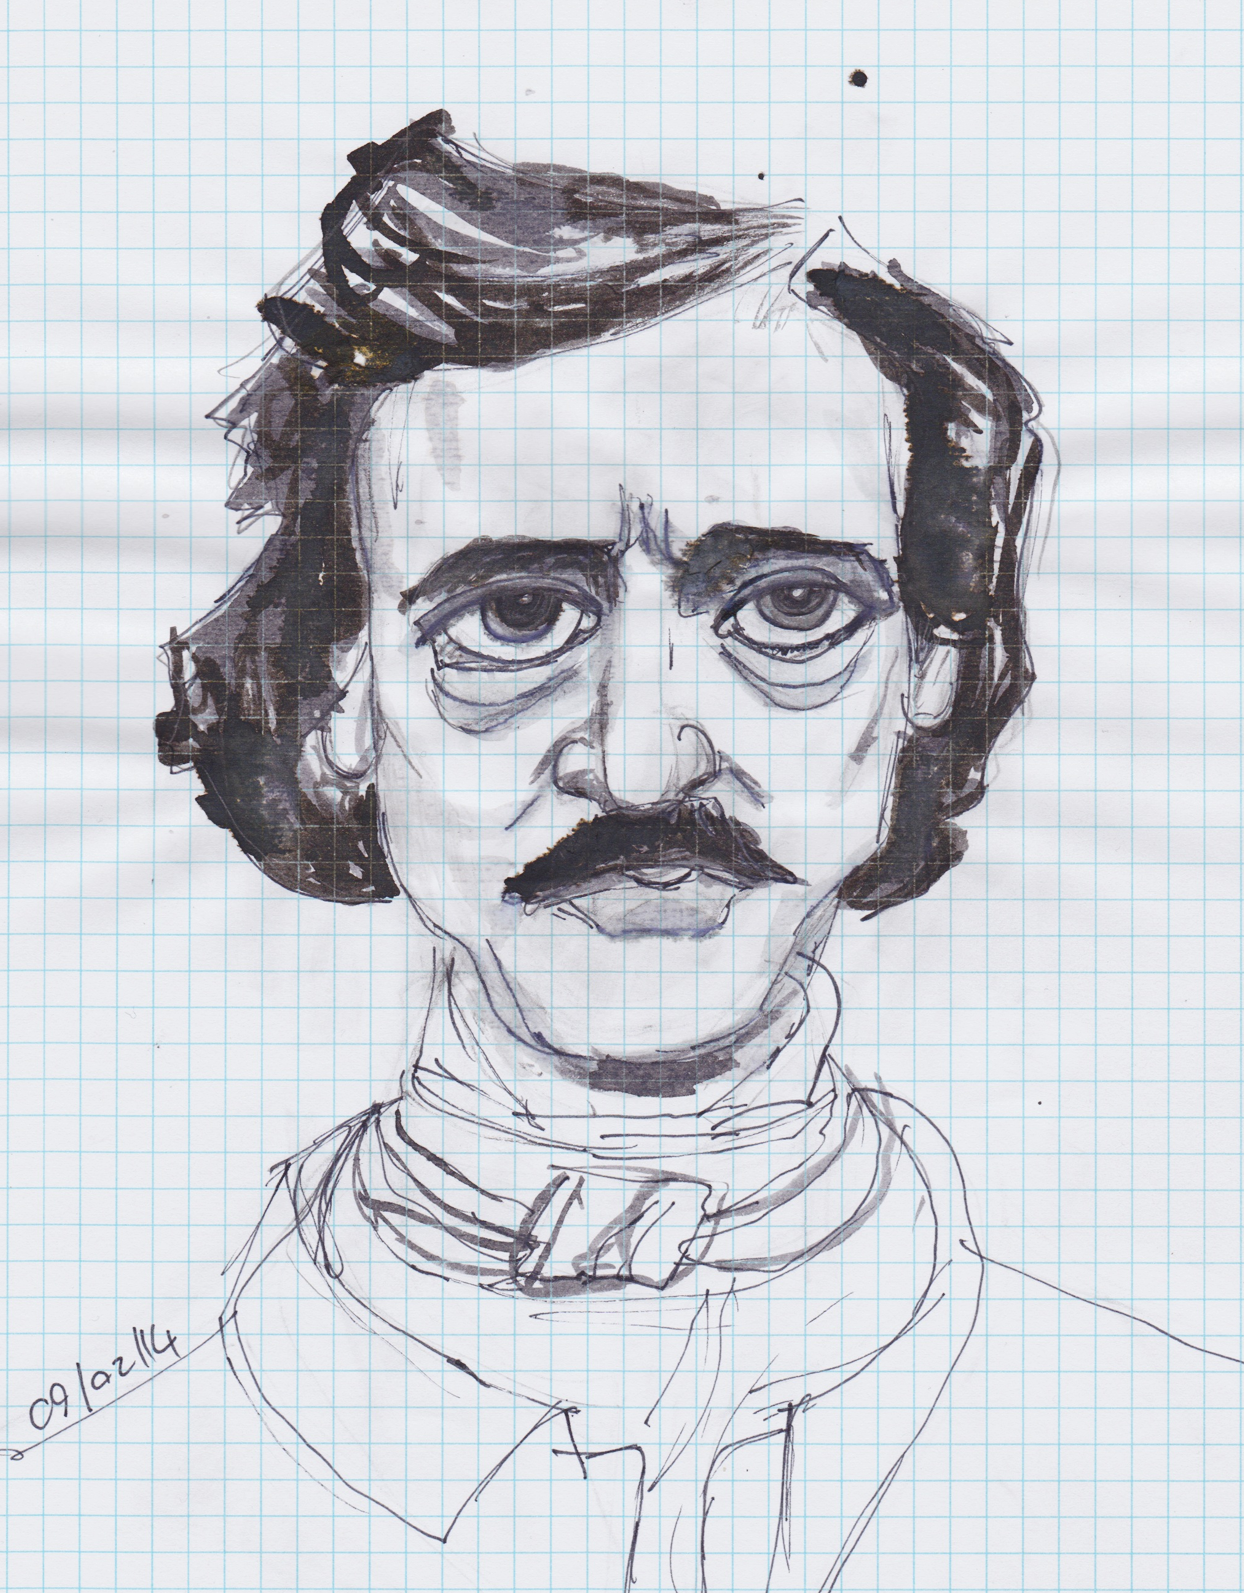 poe_drawing0902142.png